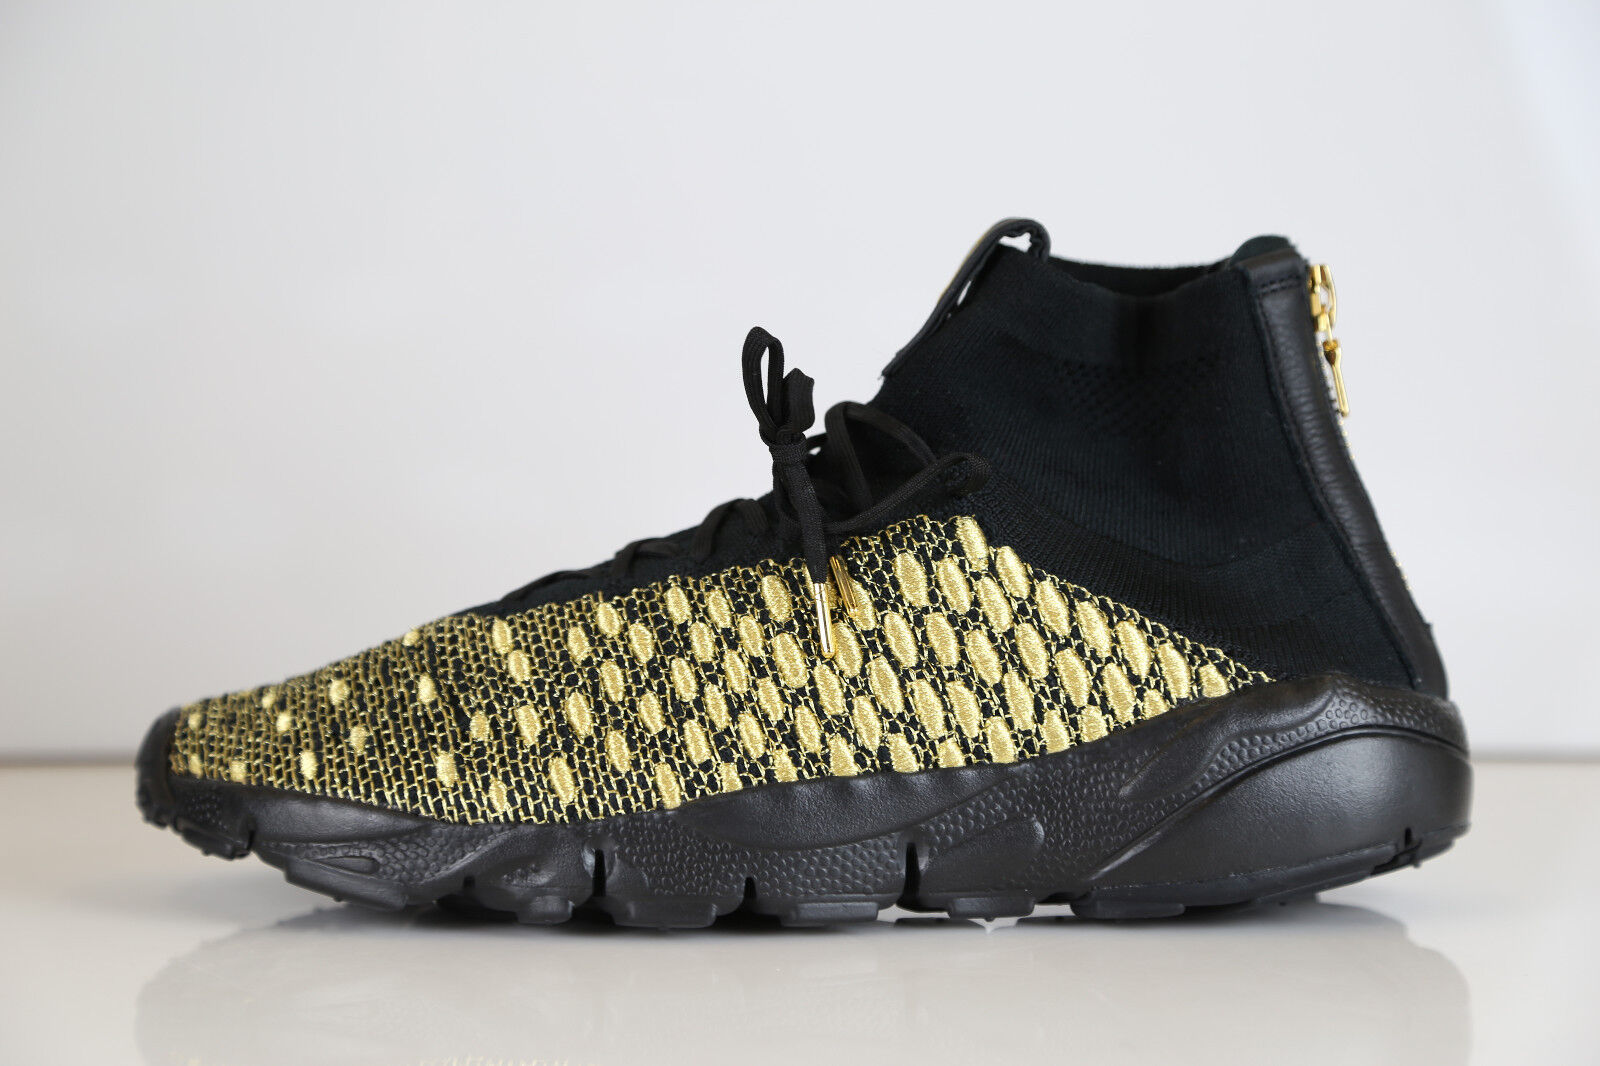 Nike Lab Air Footscape Magista QS LION nero oro Olivier 834905-007 10 10.5 1 3